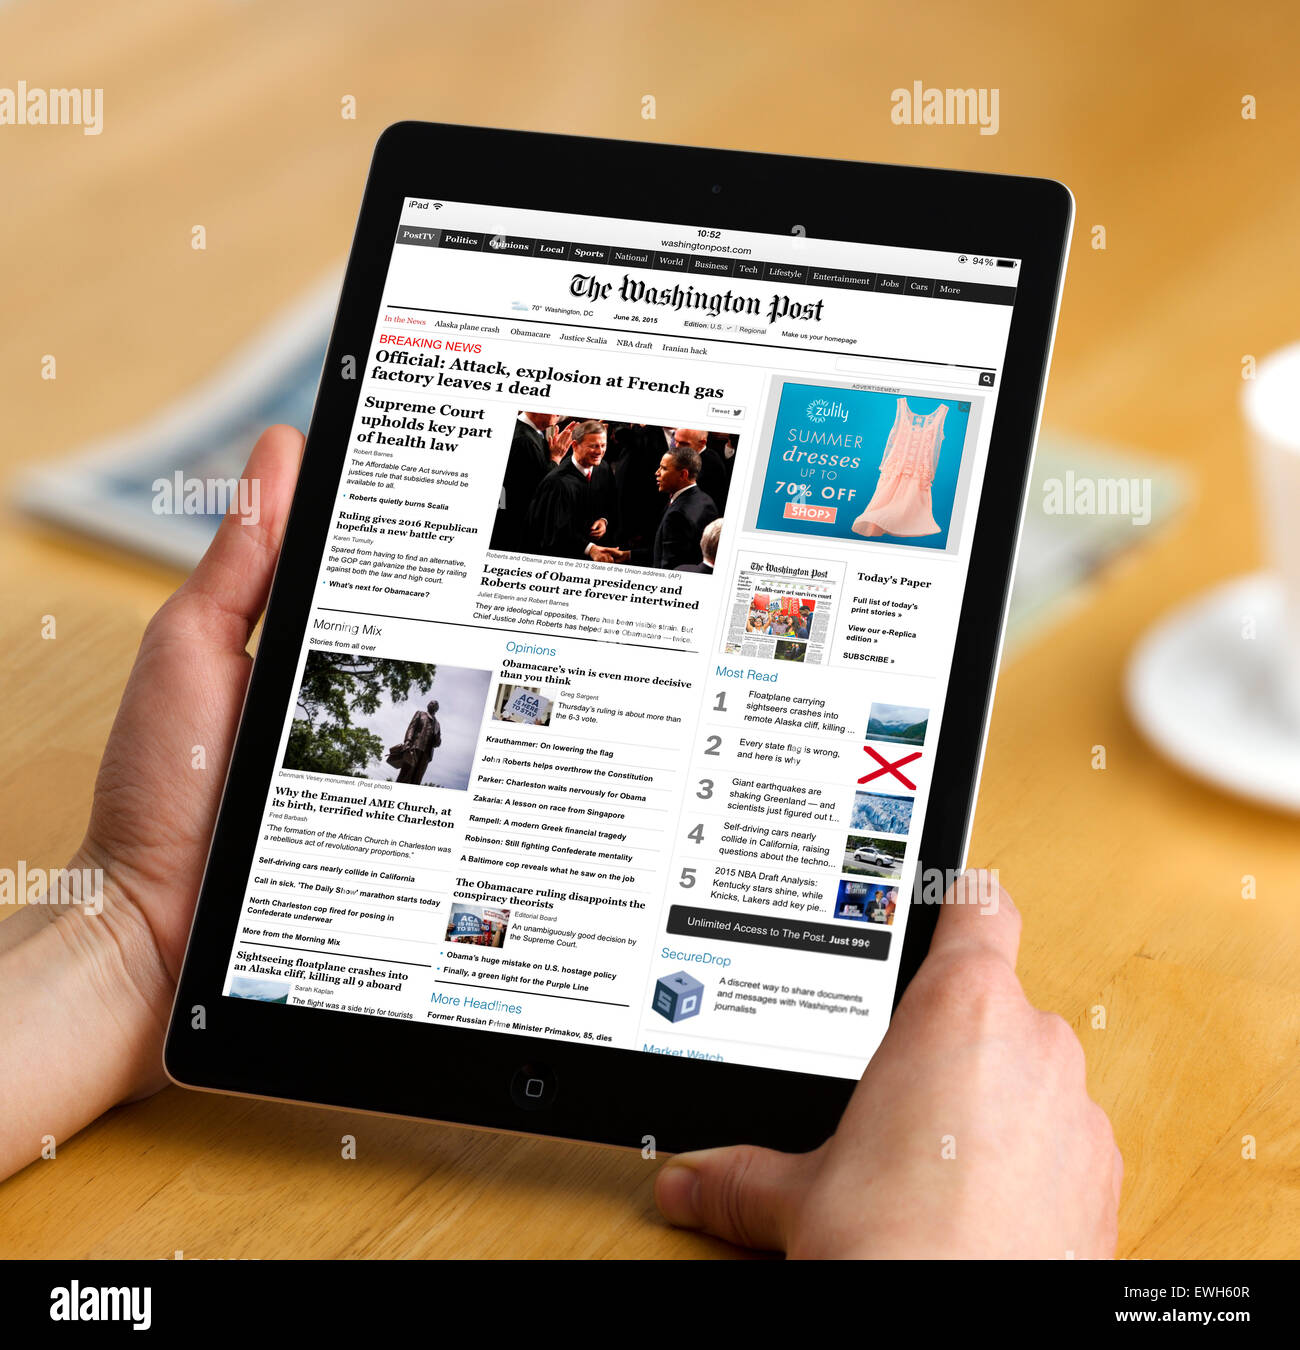 Image result for newspaper on ipad